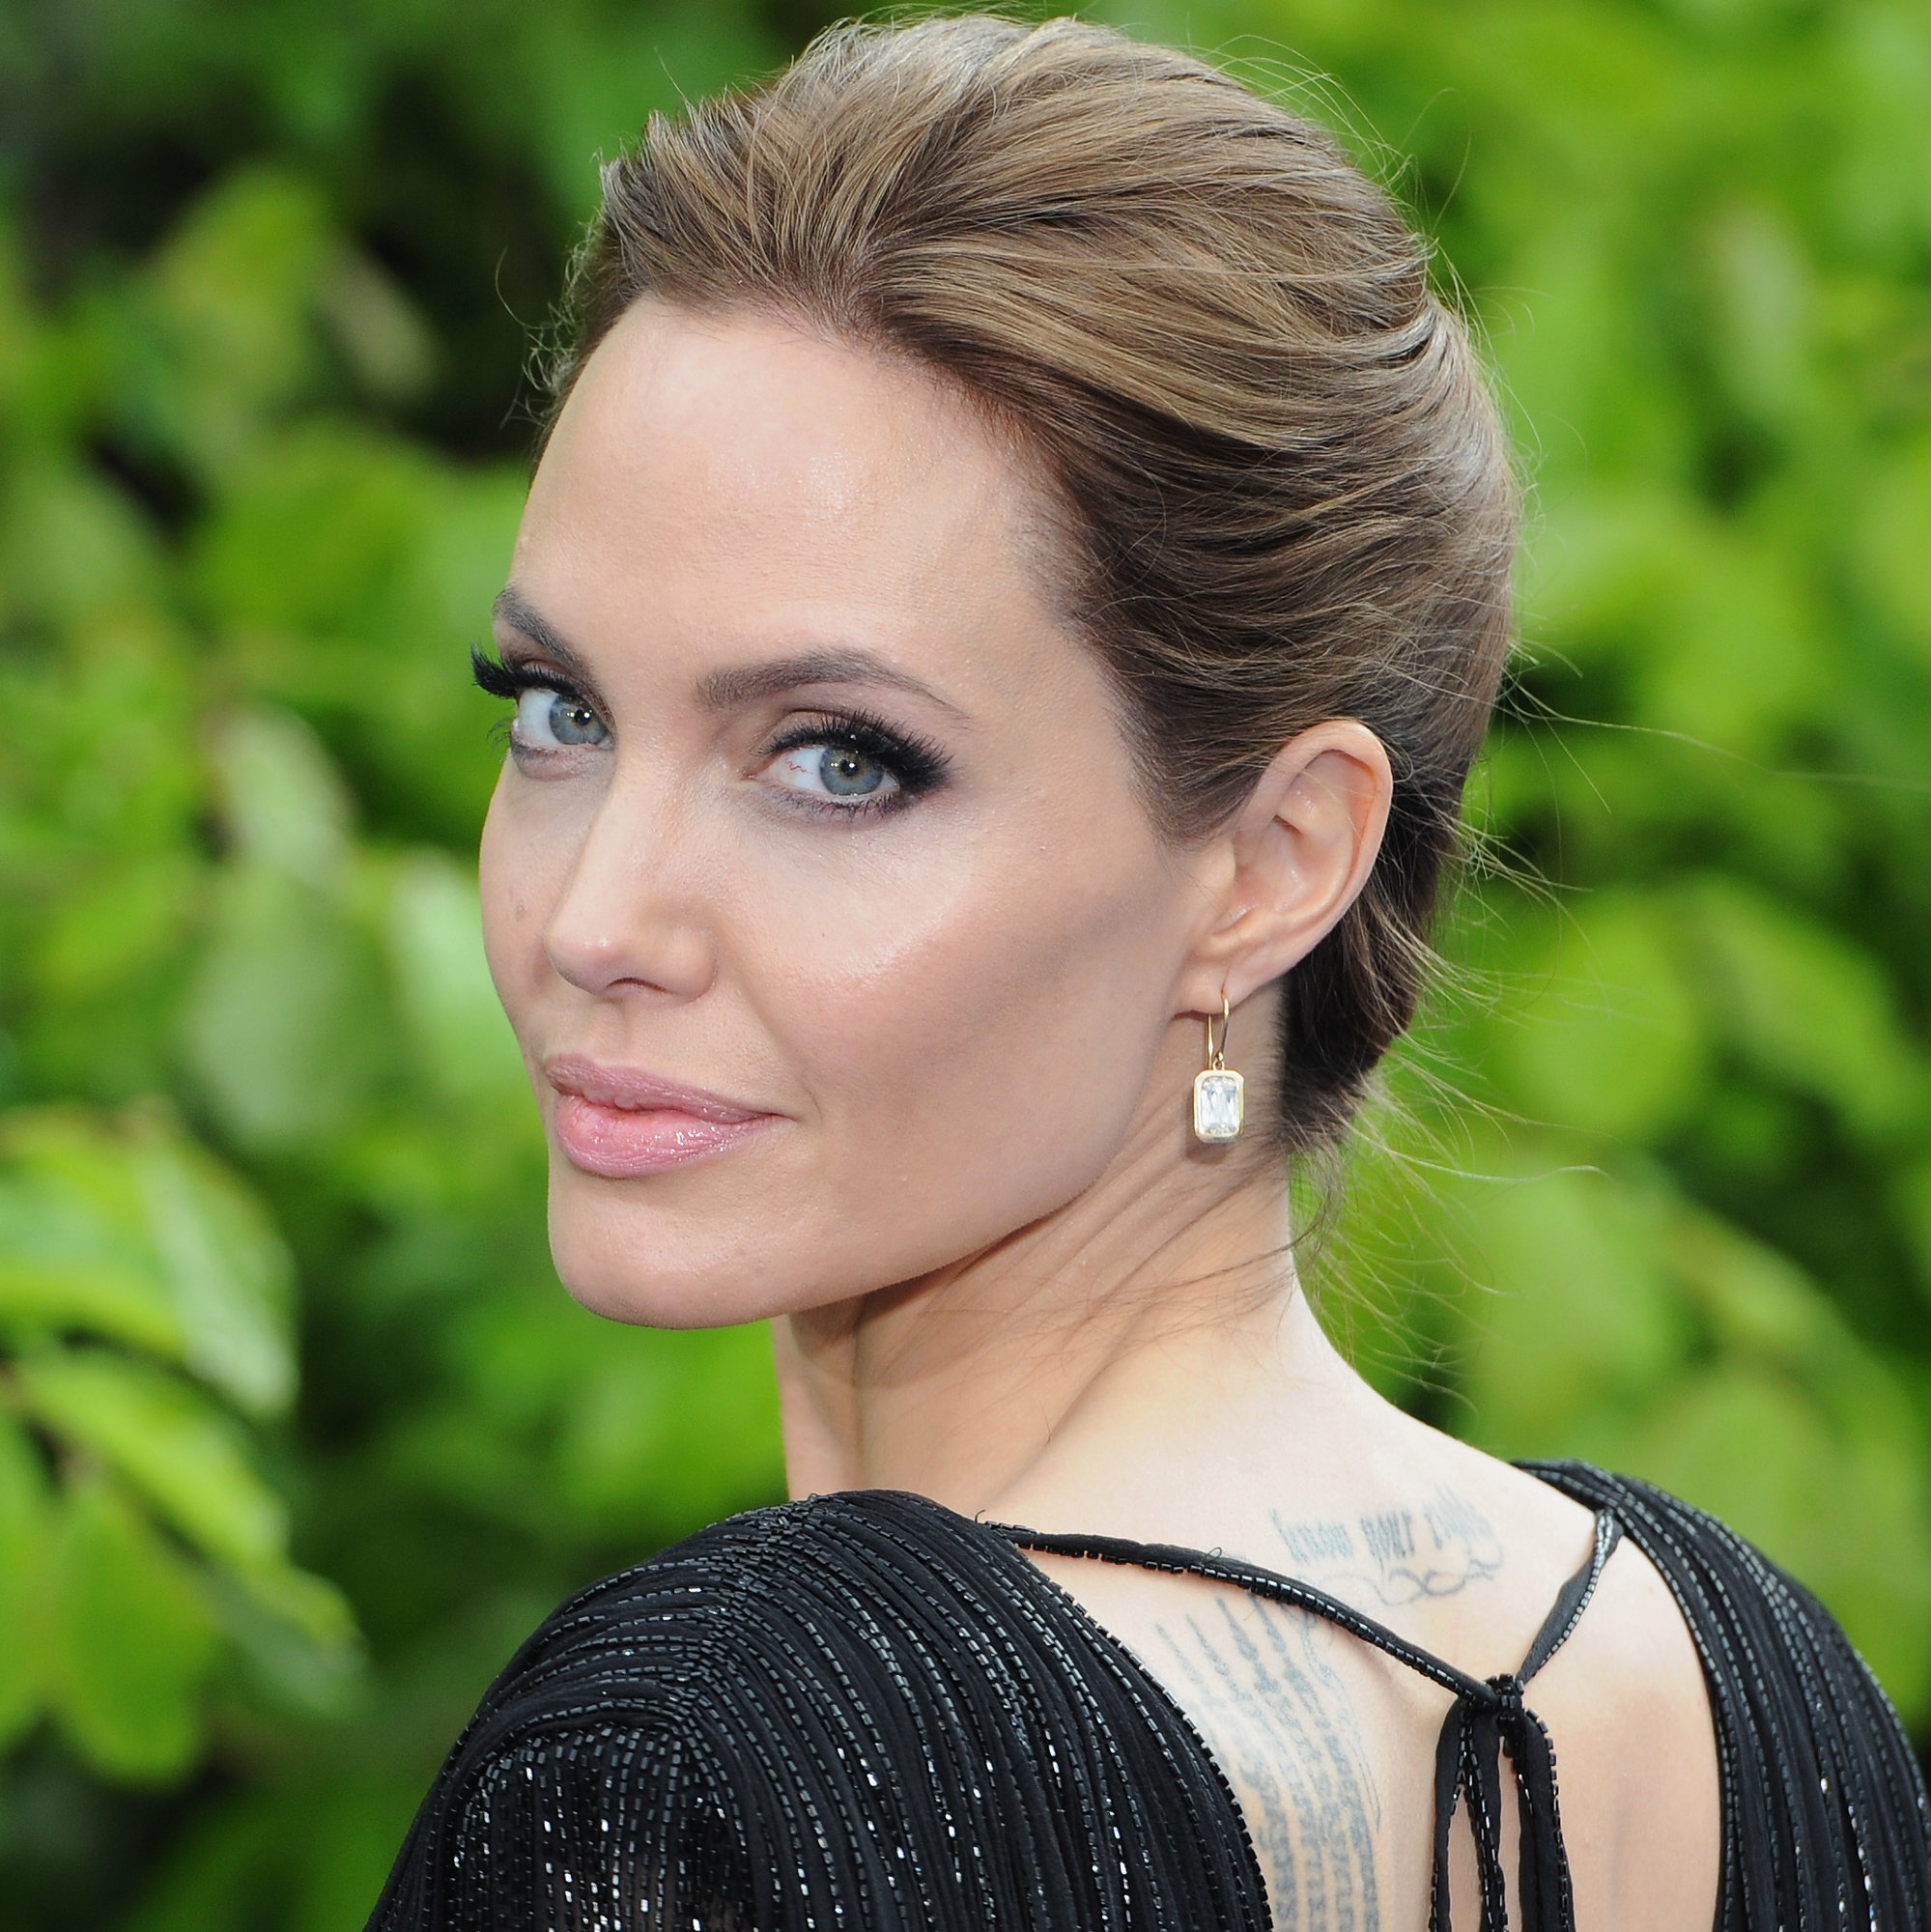 Angelina Jolie and Her Kids Eat Bugs. Here's Why That's Not a Bad Idea